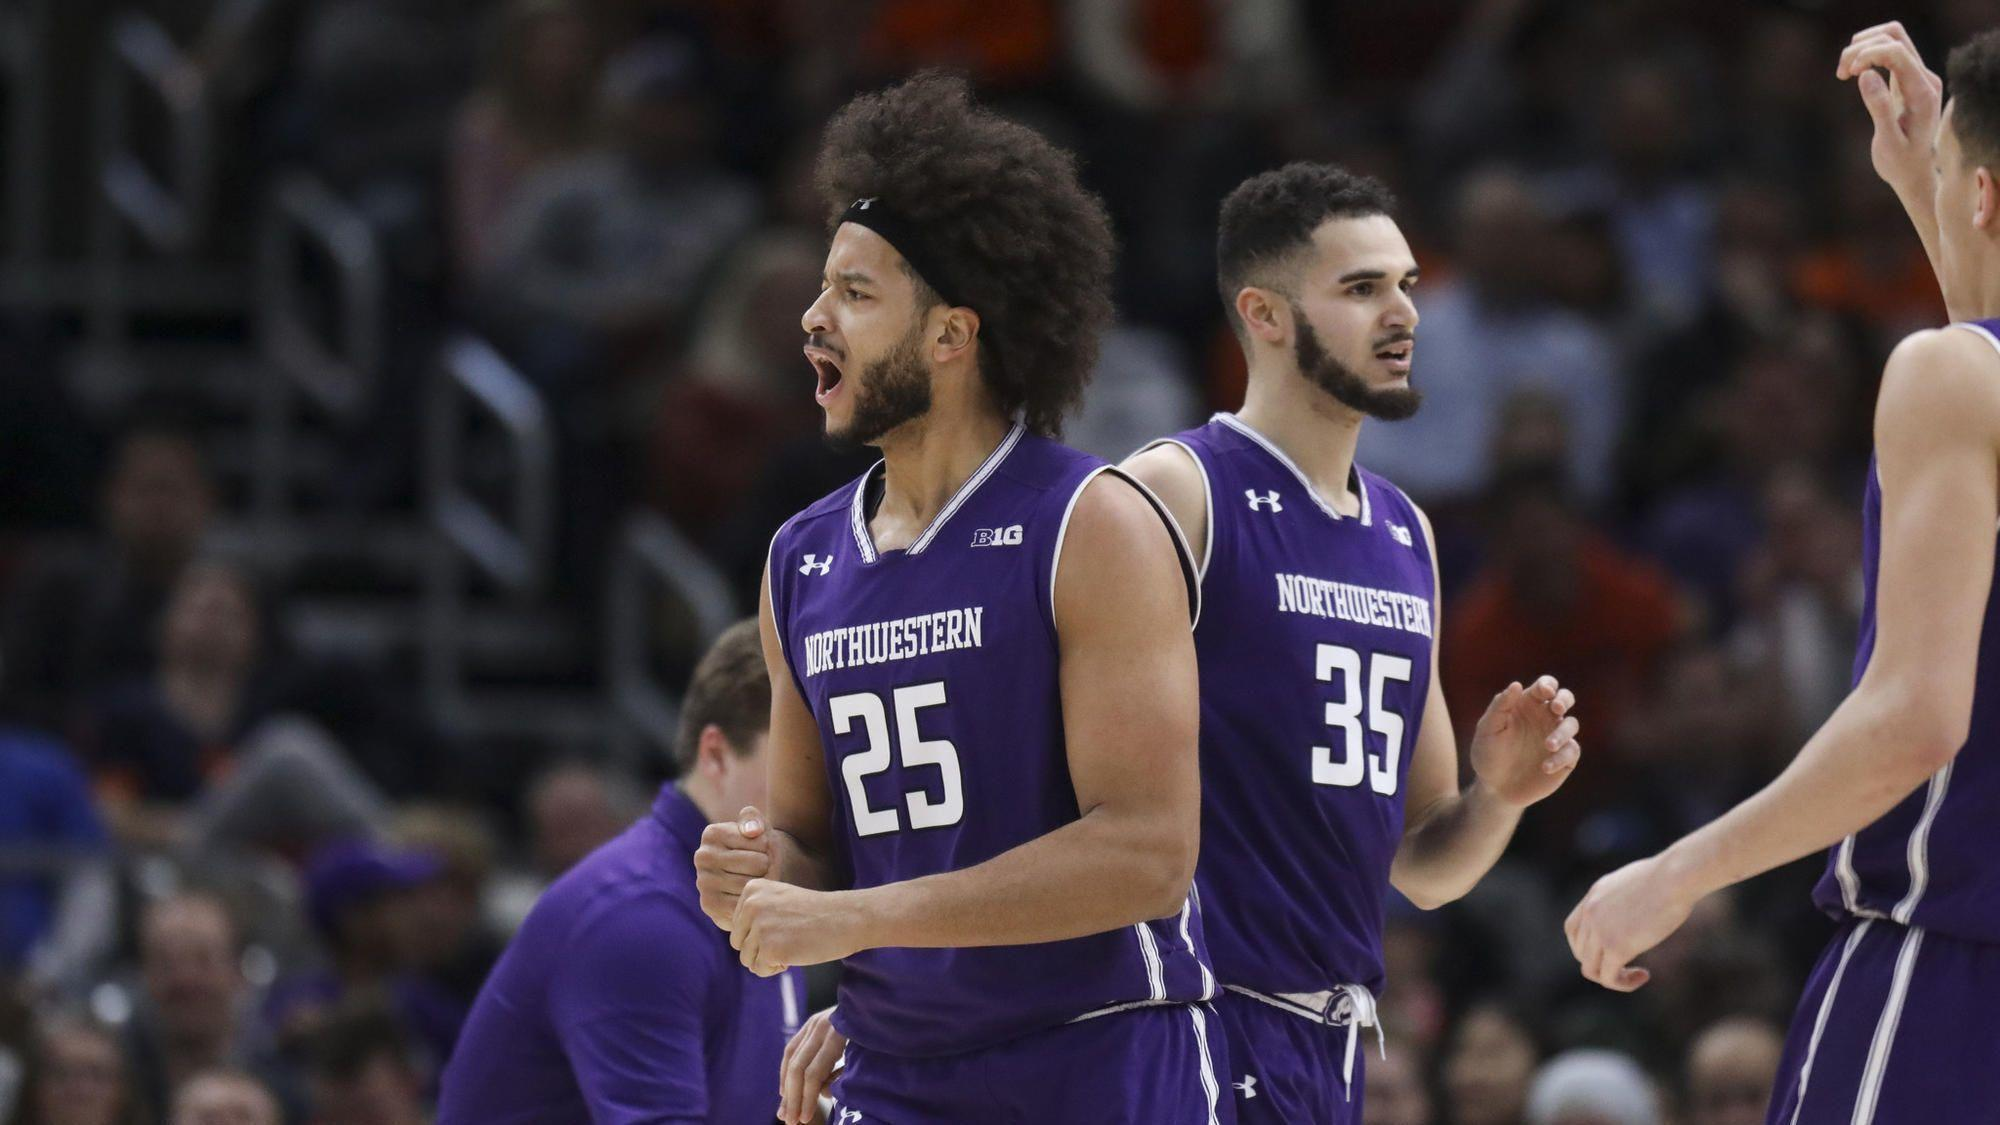 Barret Benson announces he will transfer from Northwestern